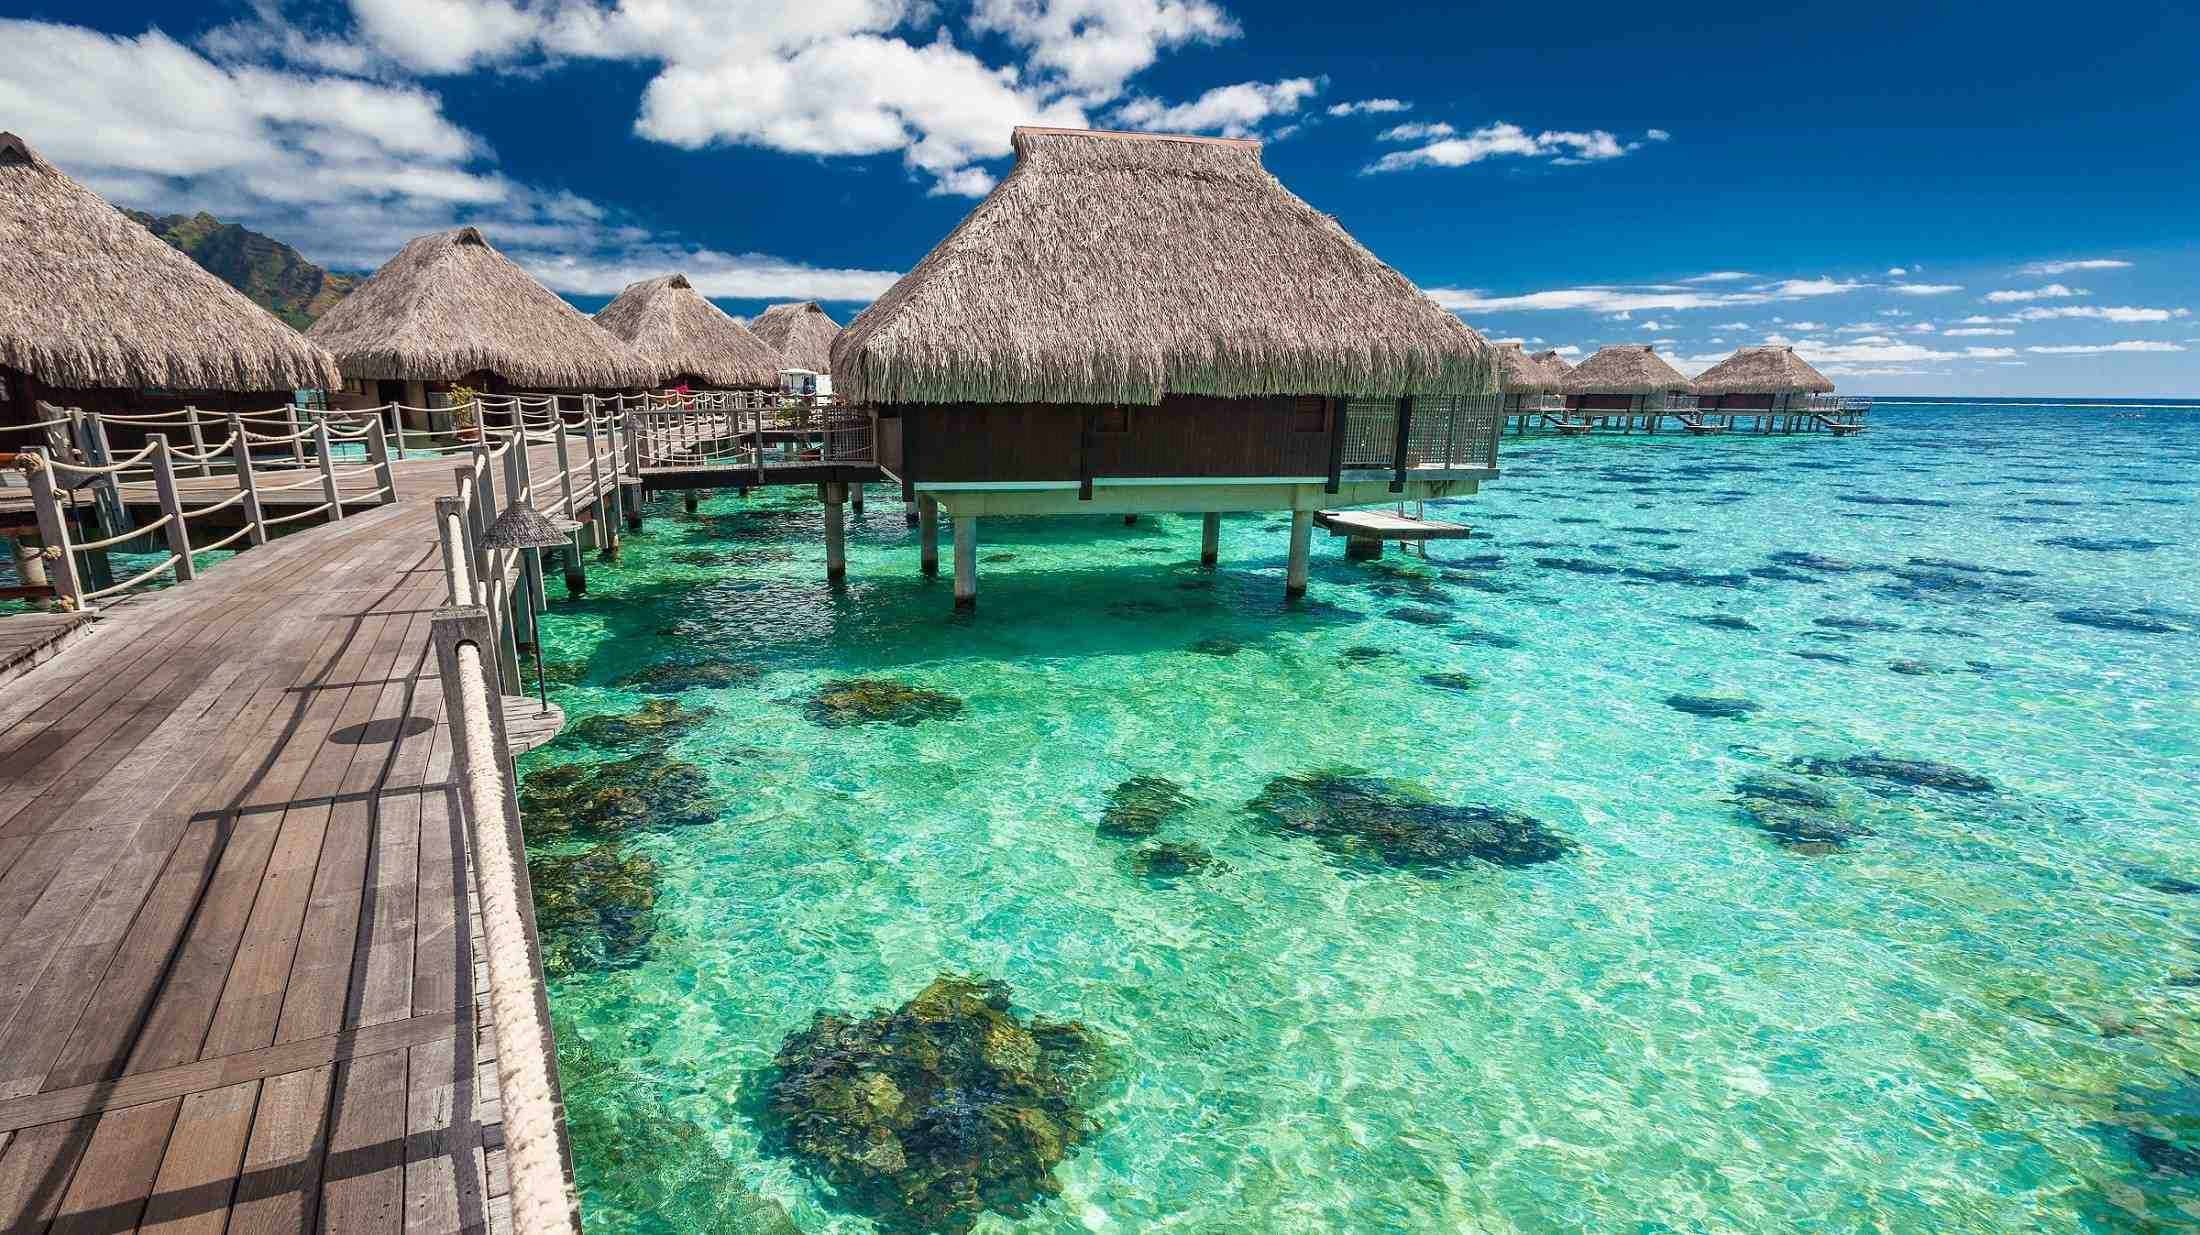 What are the best months to visit Tahiti?